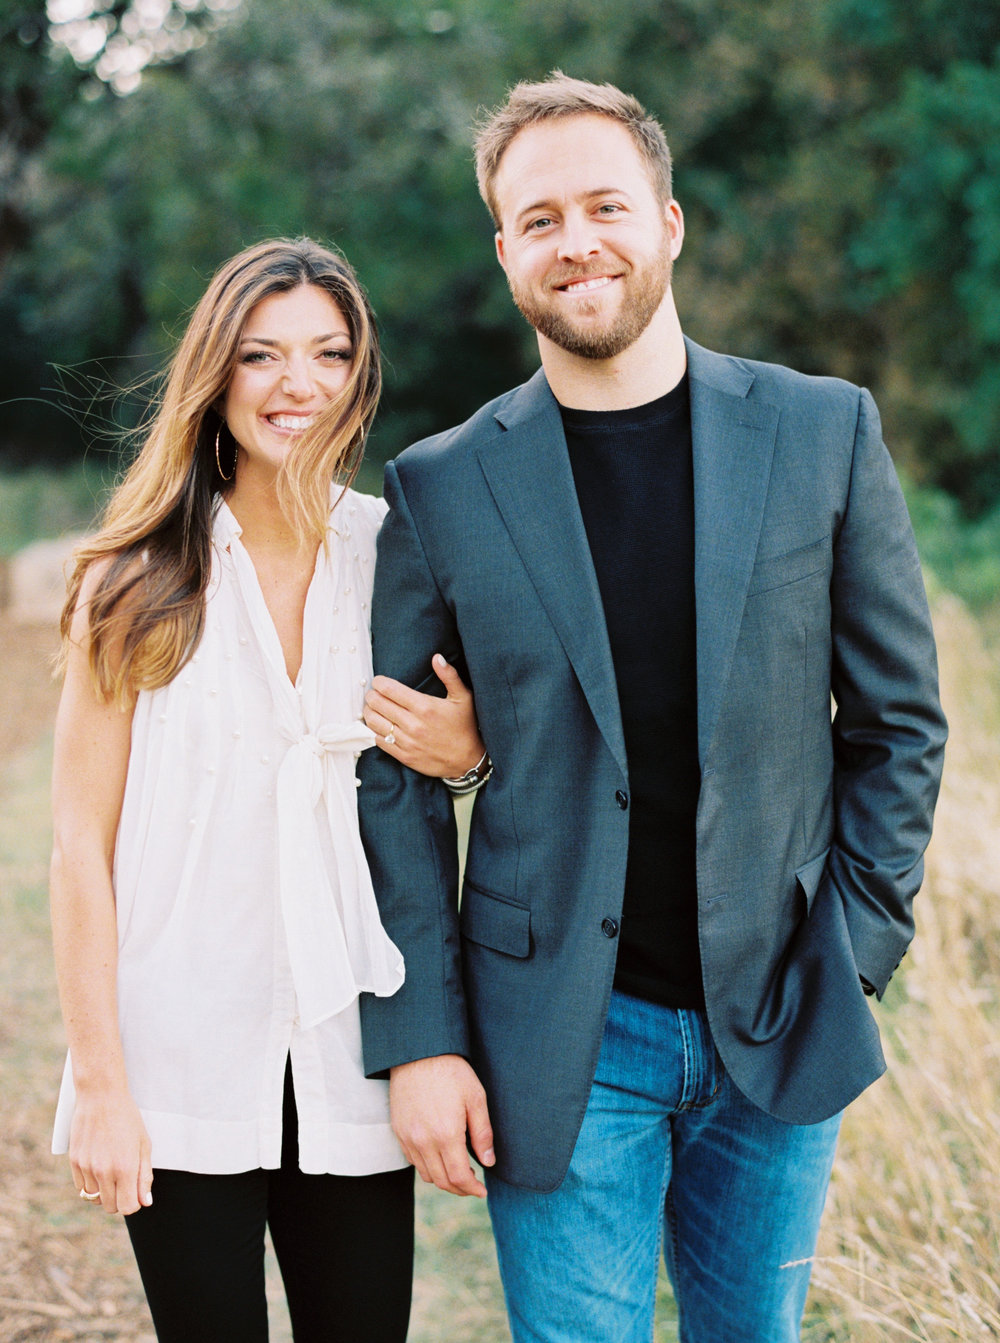 Engagement Session Outfits-150.jpg